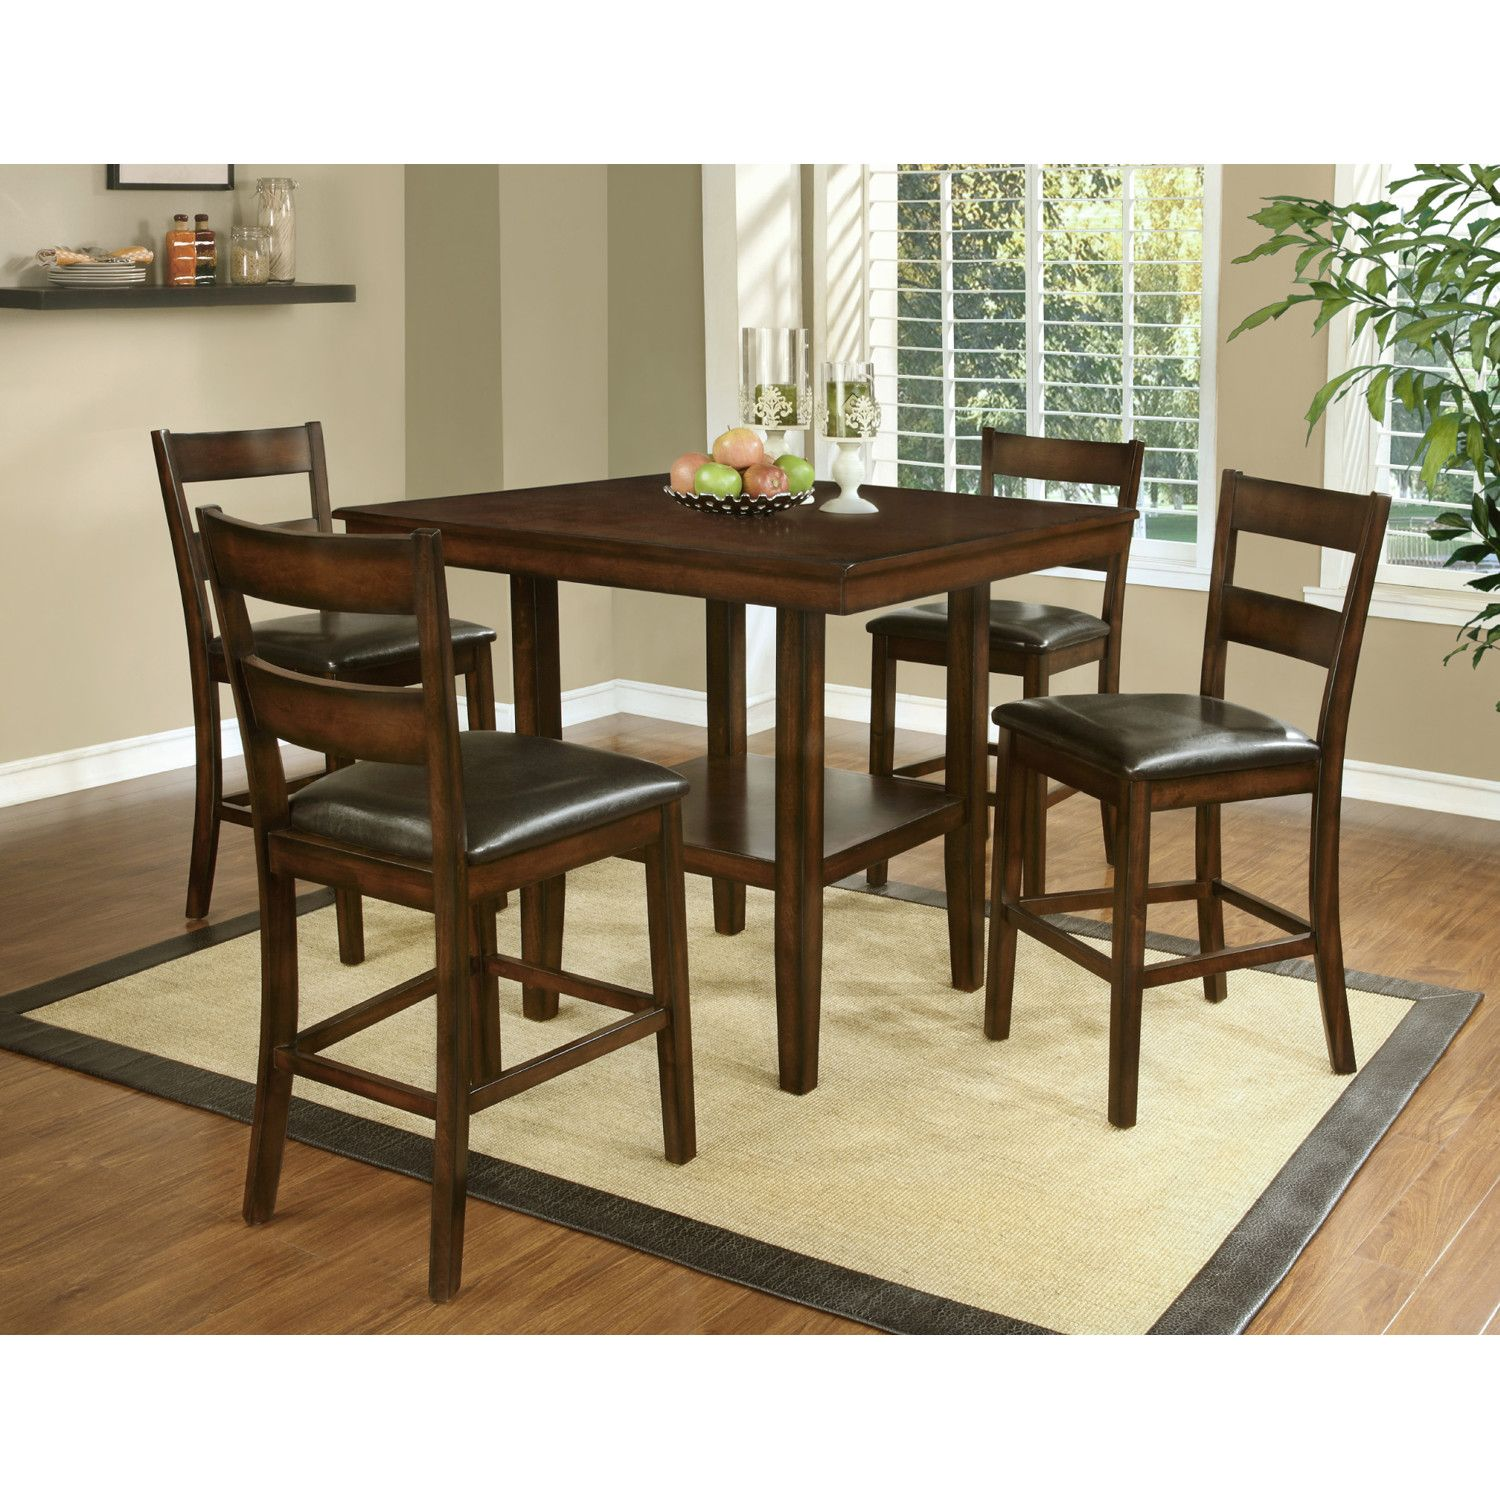 Hazelwood Home 5 Piece Counter Height Dining Set  Marks Condo Prepossessing Height Dining Room Table Design Inspiration